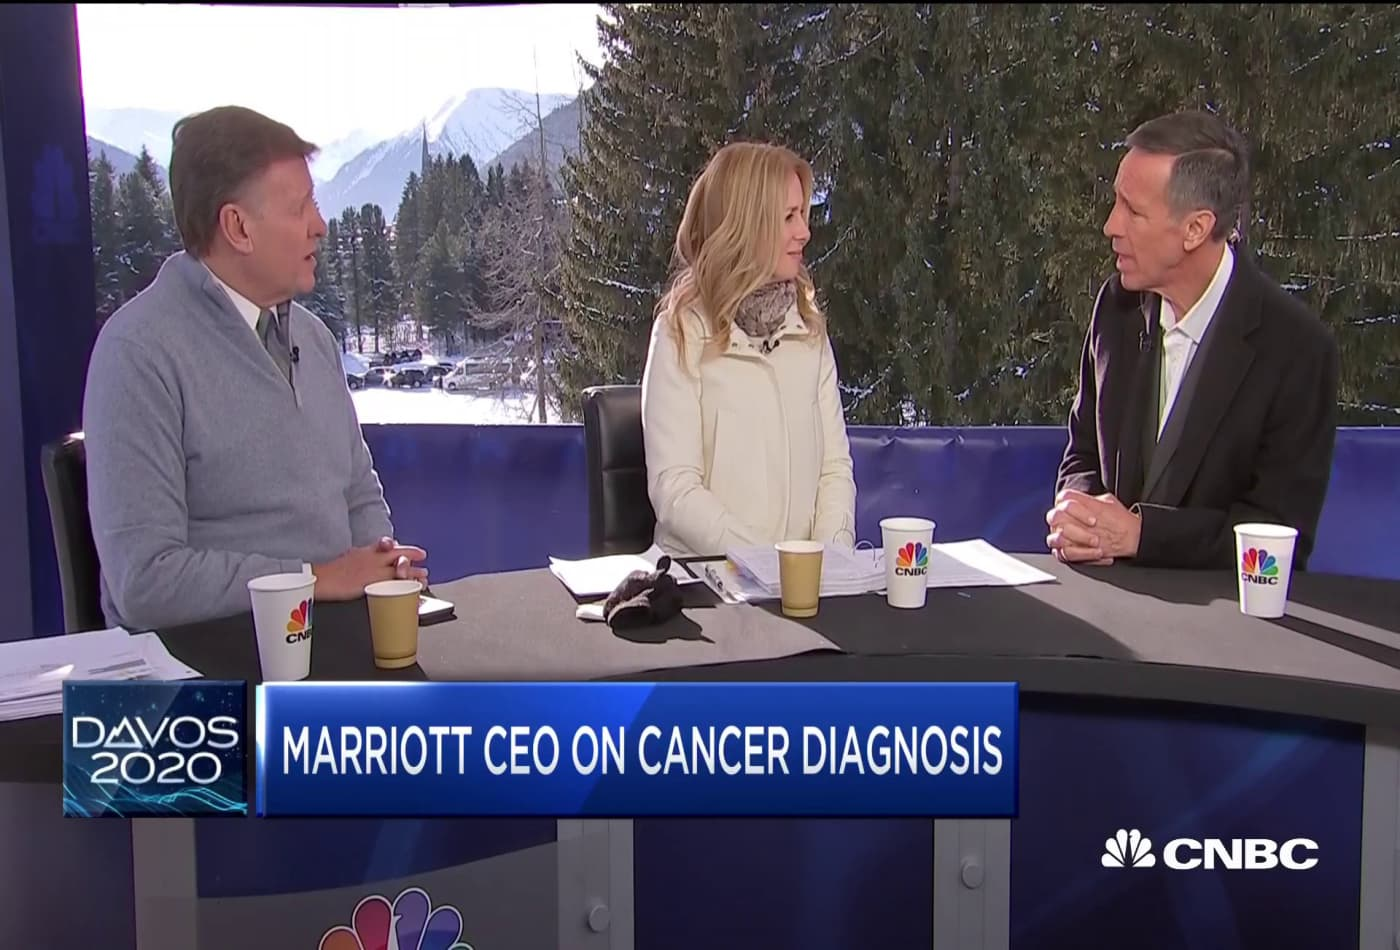 Watch CNBC's full interview with Marriott CEO Arne Sorenson